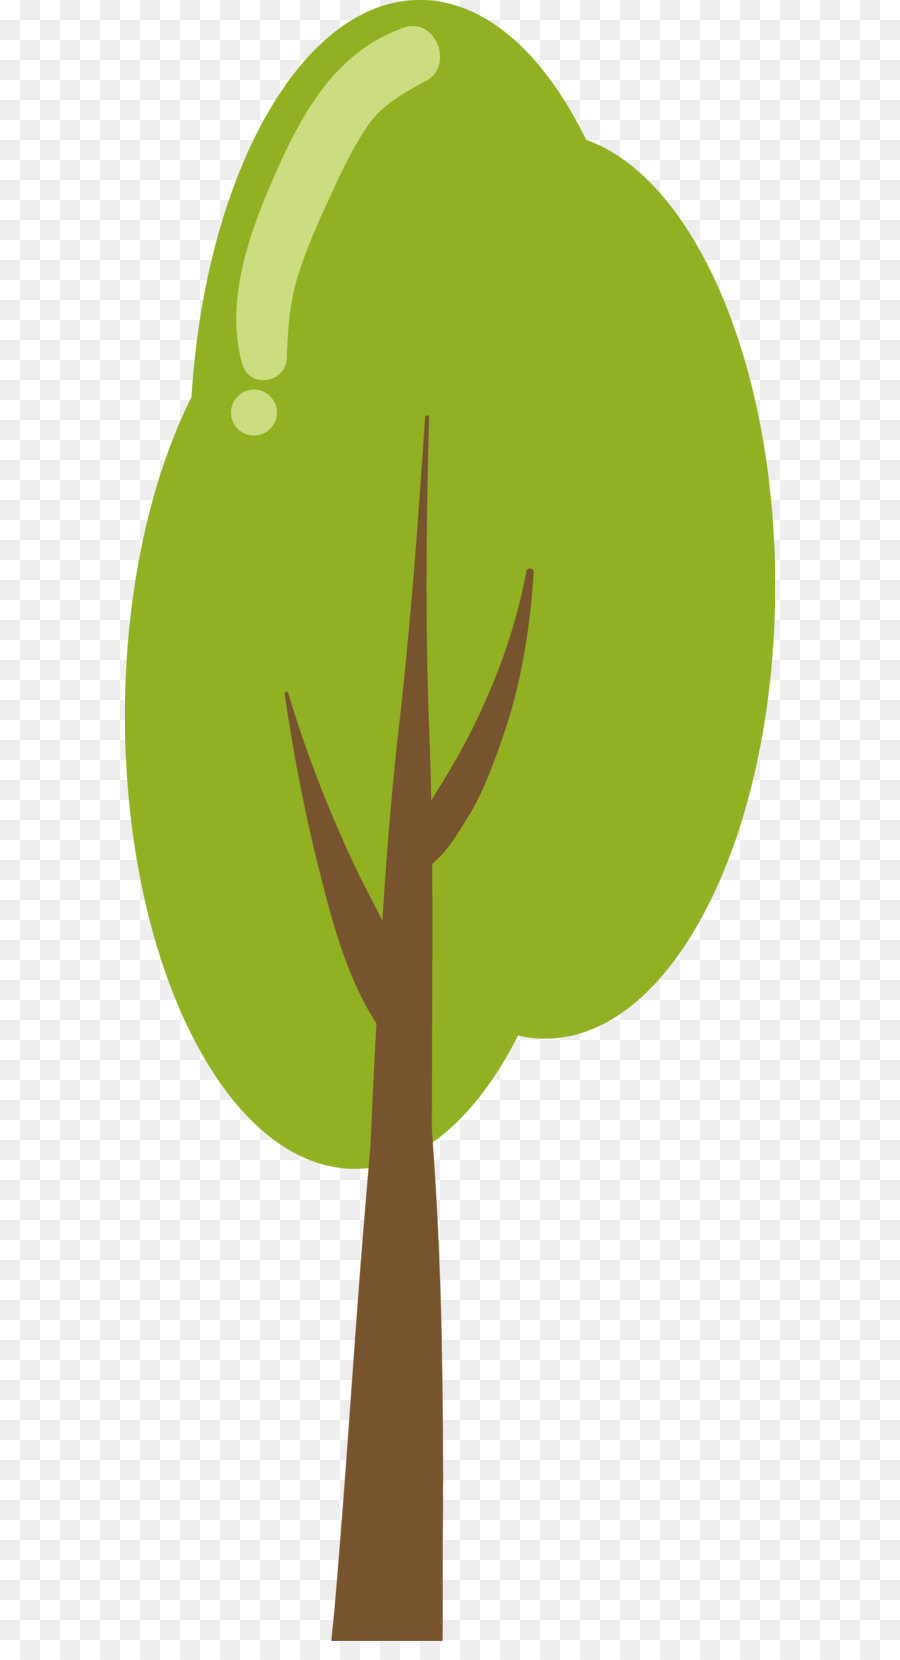 medium resolution of cartoon tree diagram plant font png